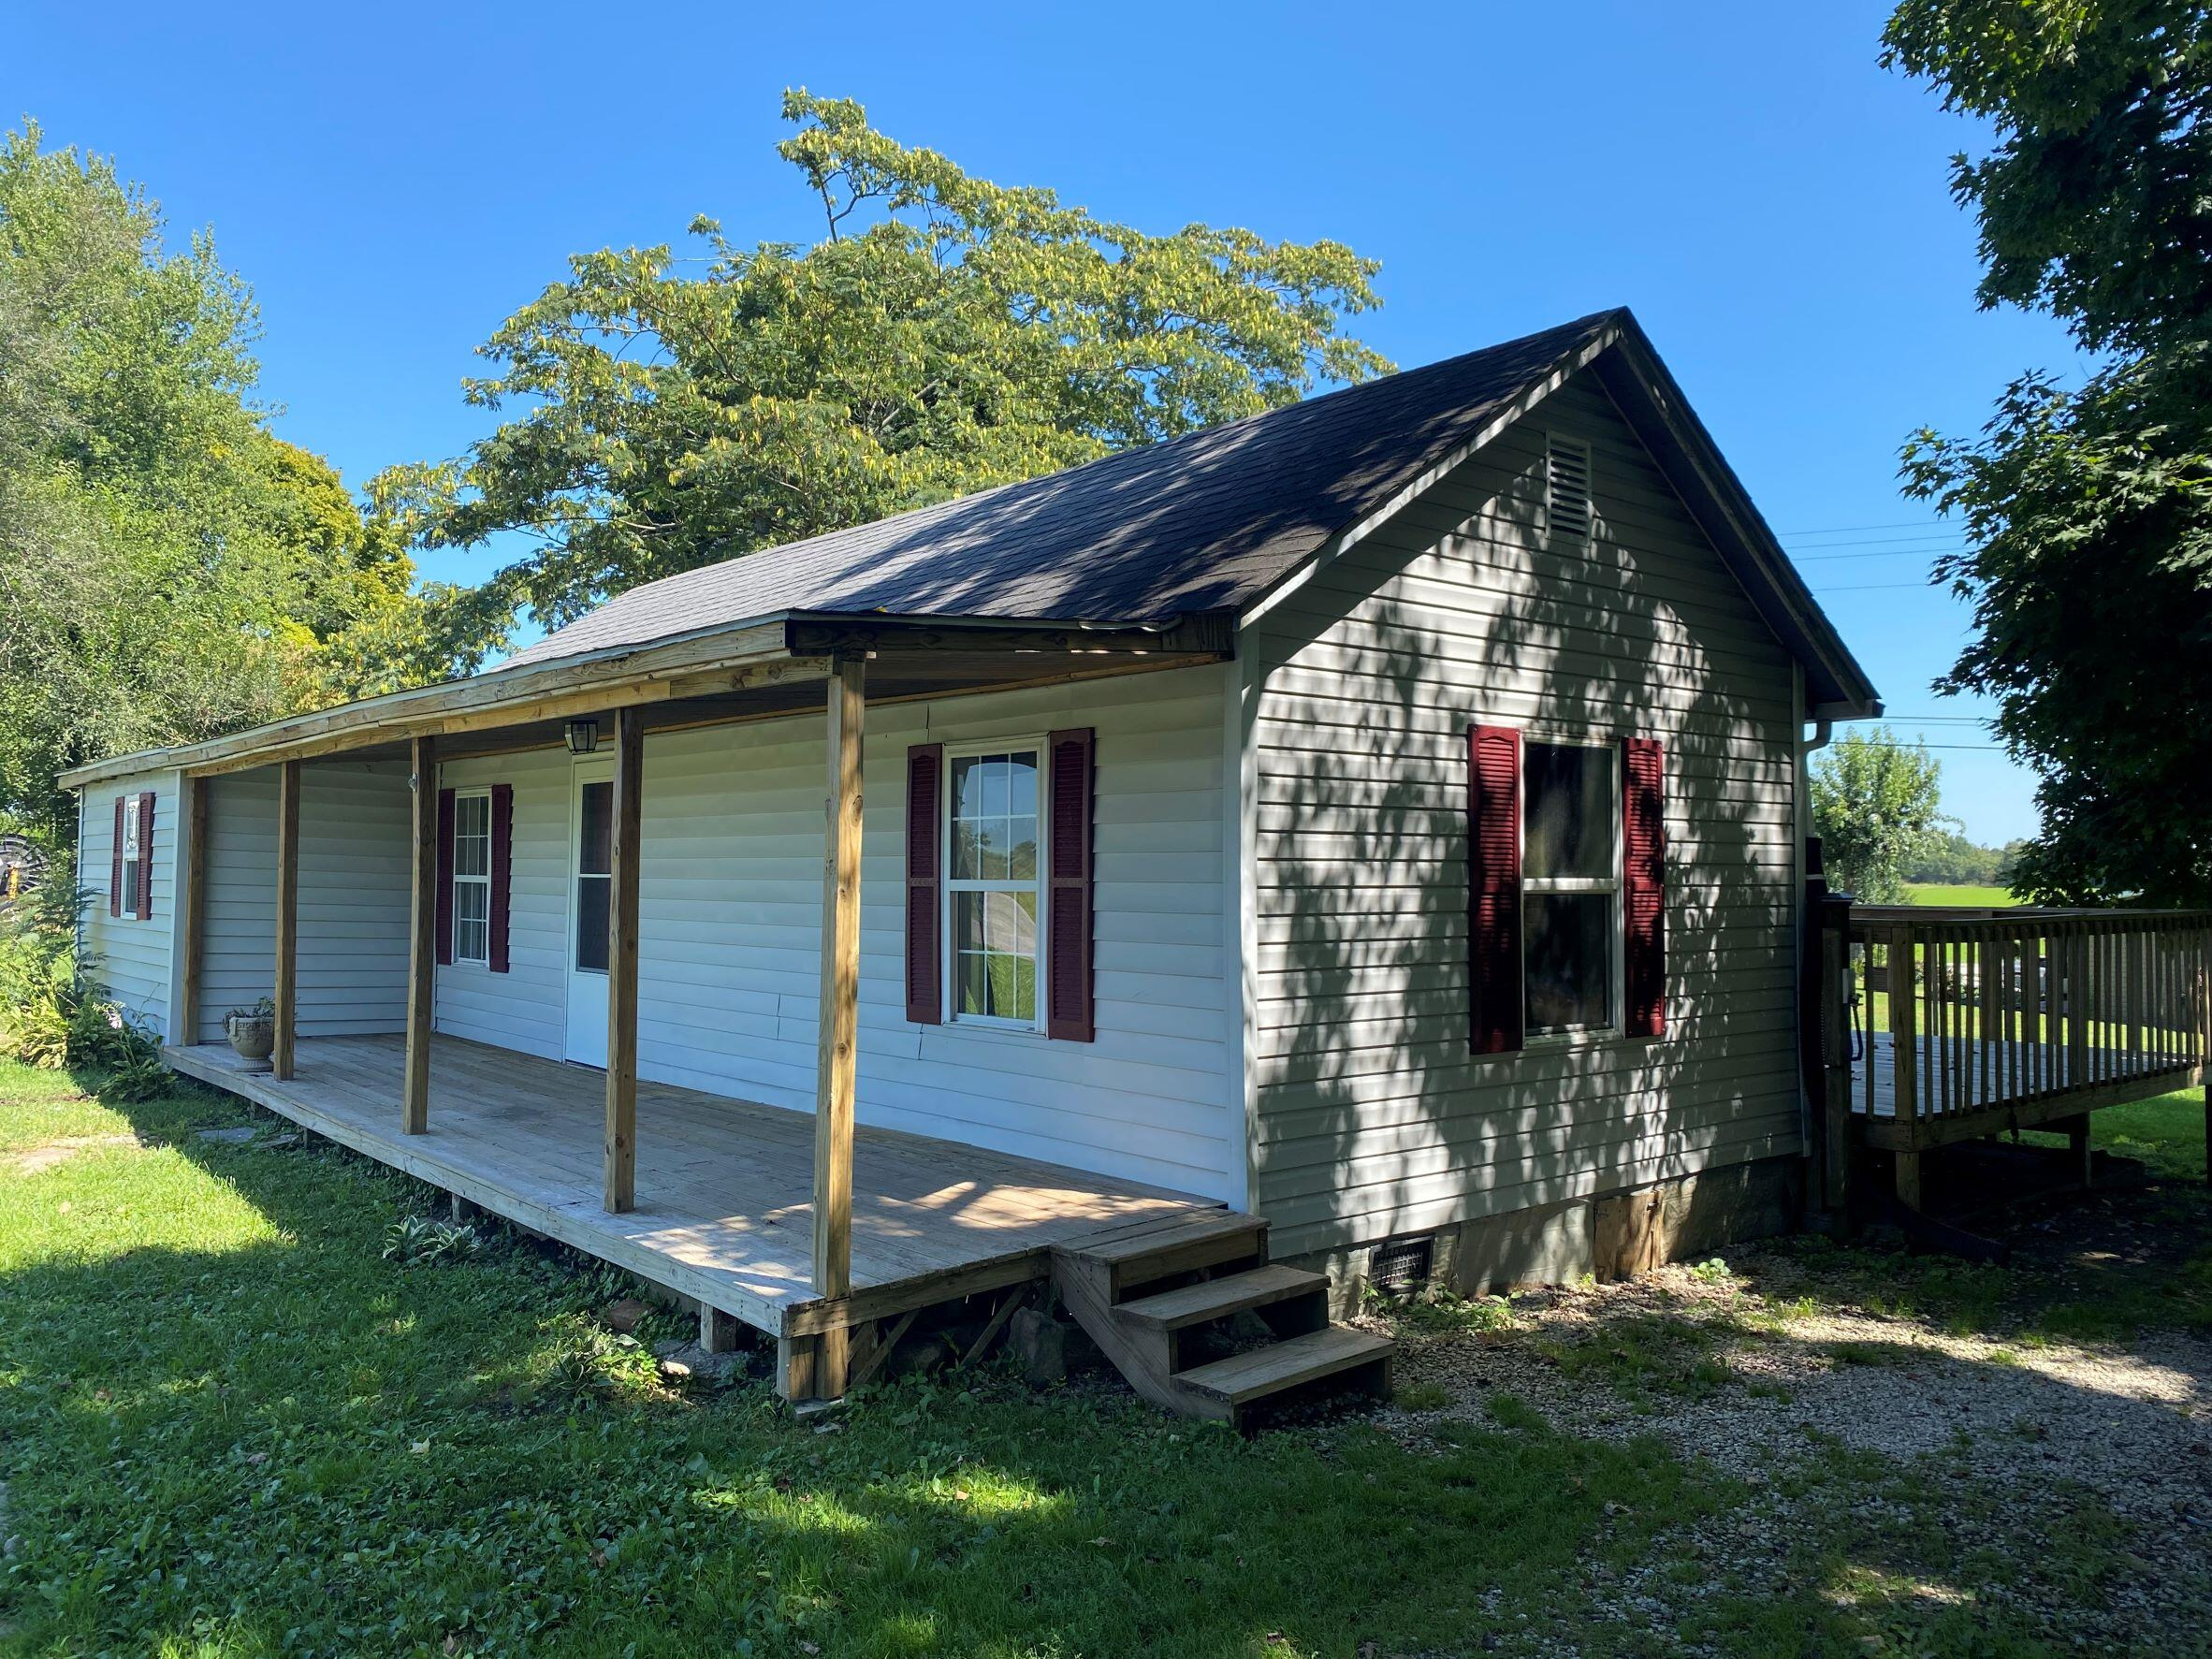 8465 KY-1781, Crab Orchard, KY 40419